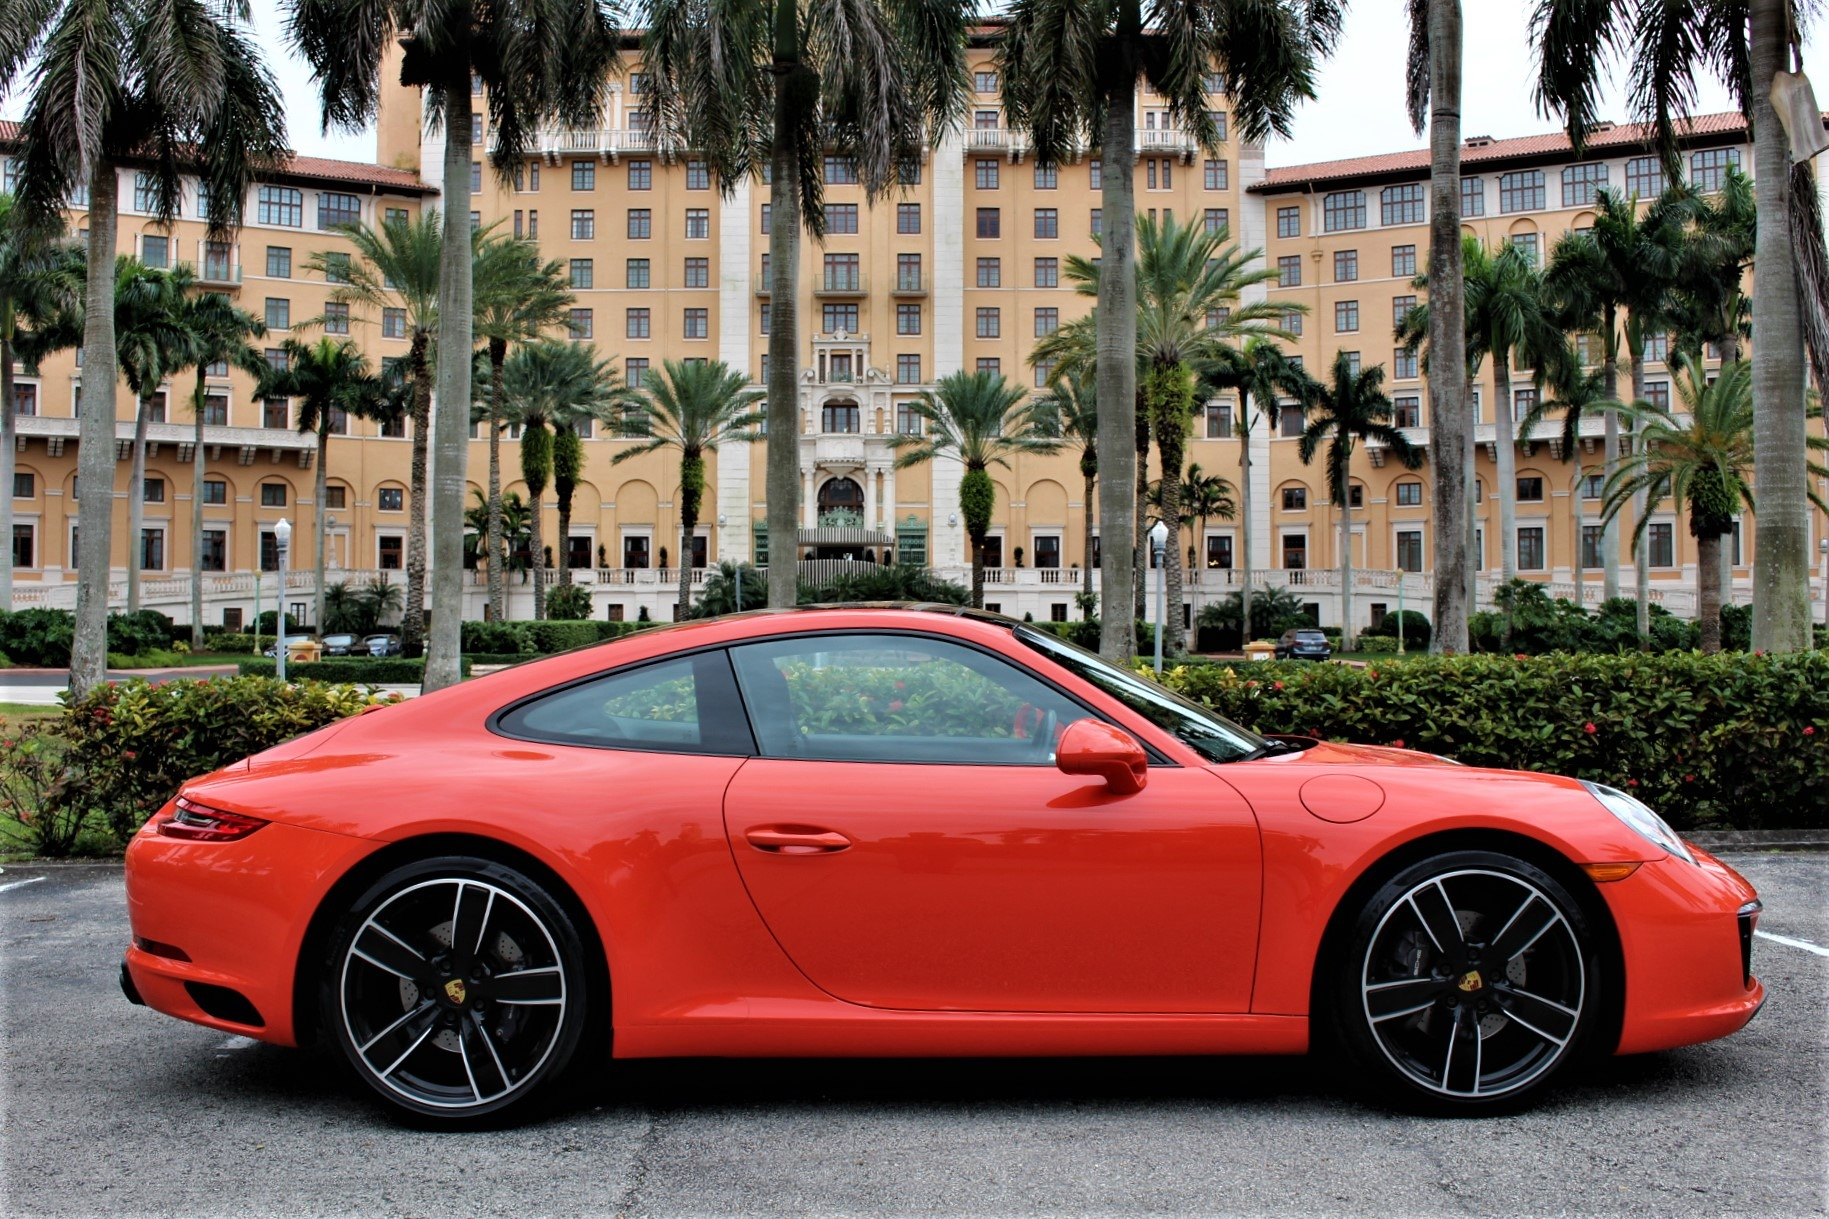 Used 2017 Porsche 911 Carrera for sale $89,850 at The Gables Sports Cars in Miami FL 33146 1